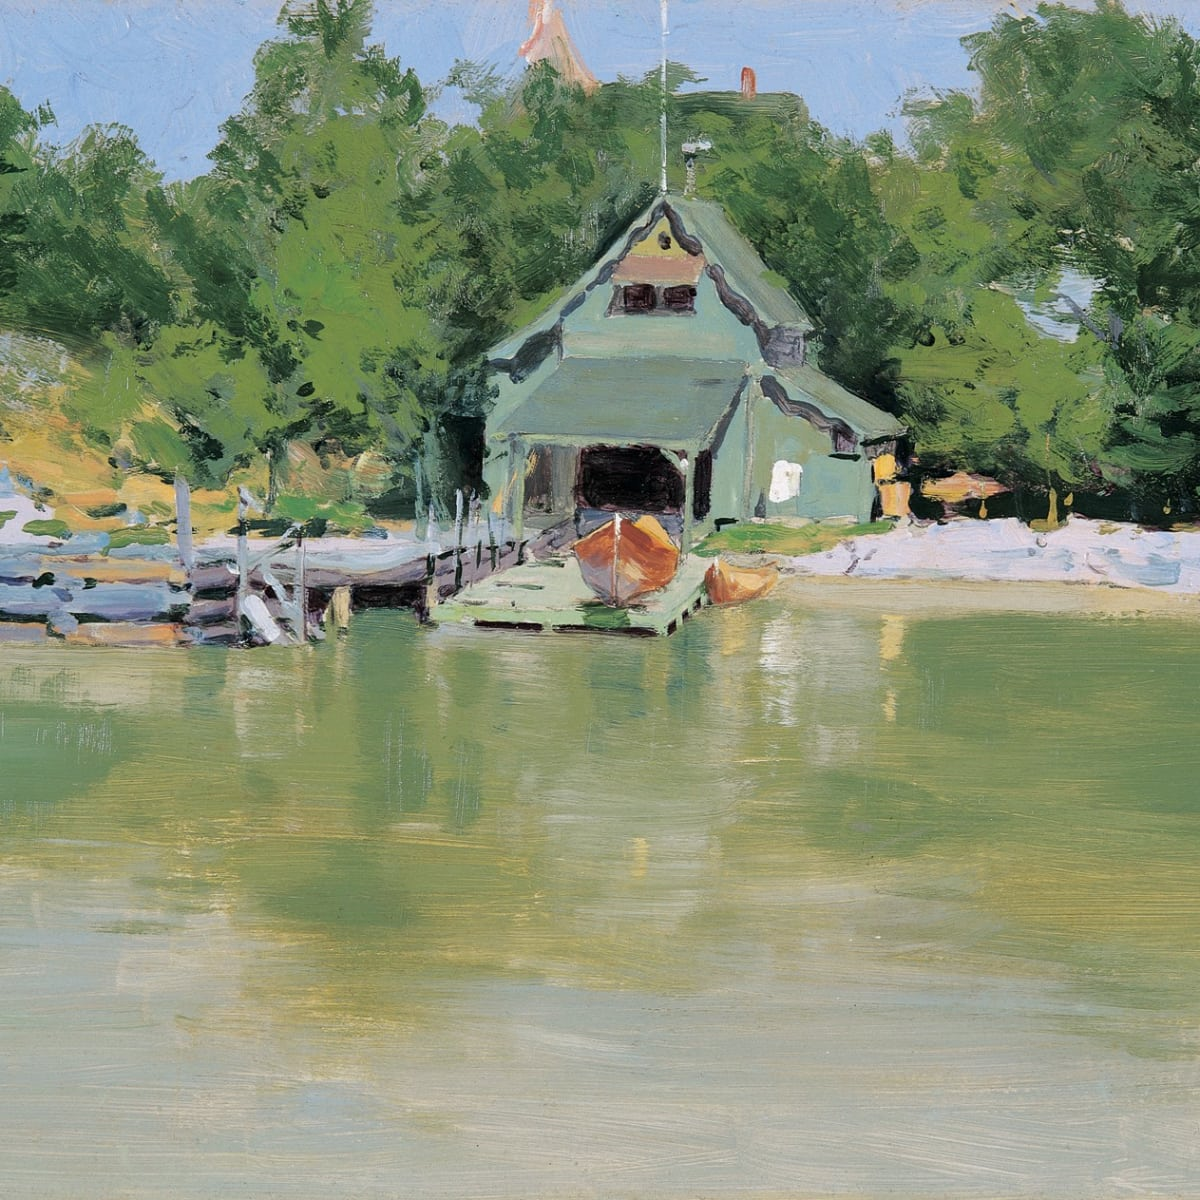 Sid Richardson Museum, Frederic Remington East, Boathouse